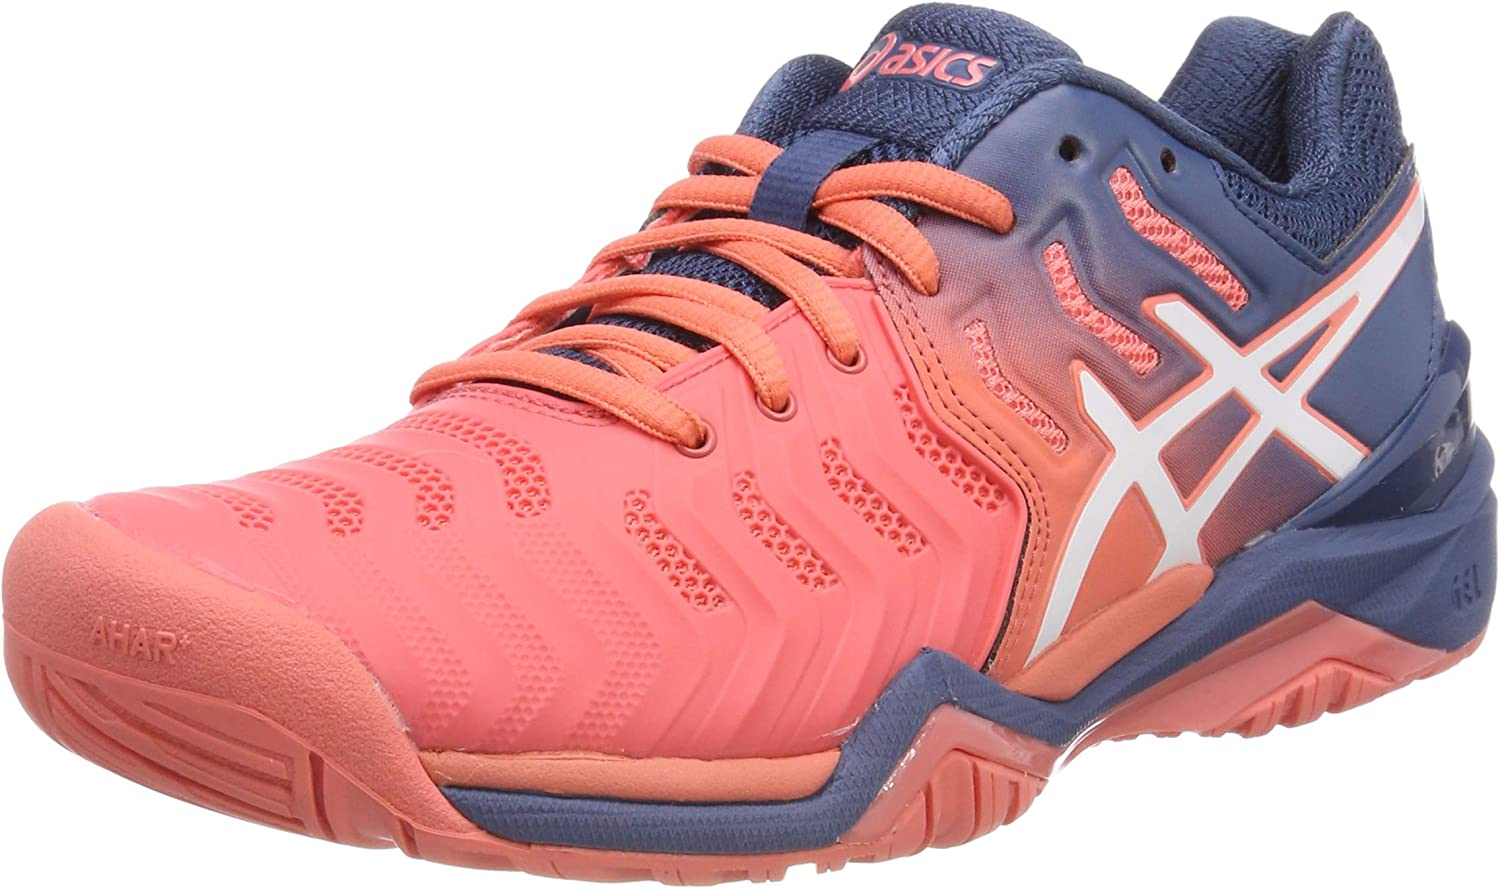 Asics Womens Gel-Solution Speed FF Tennis Shoes Pink Sports Breathable